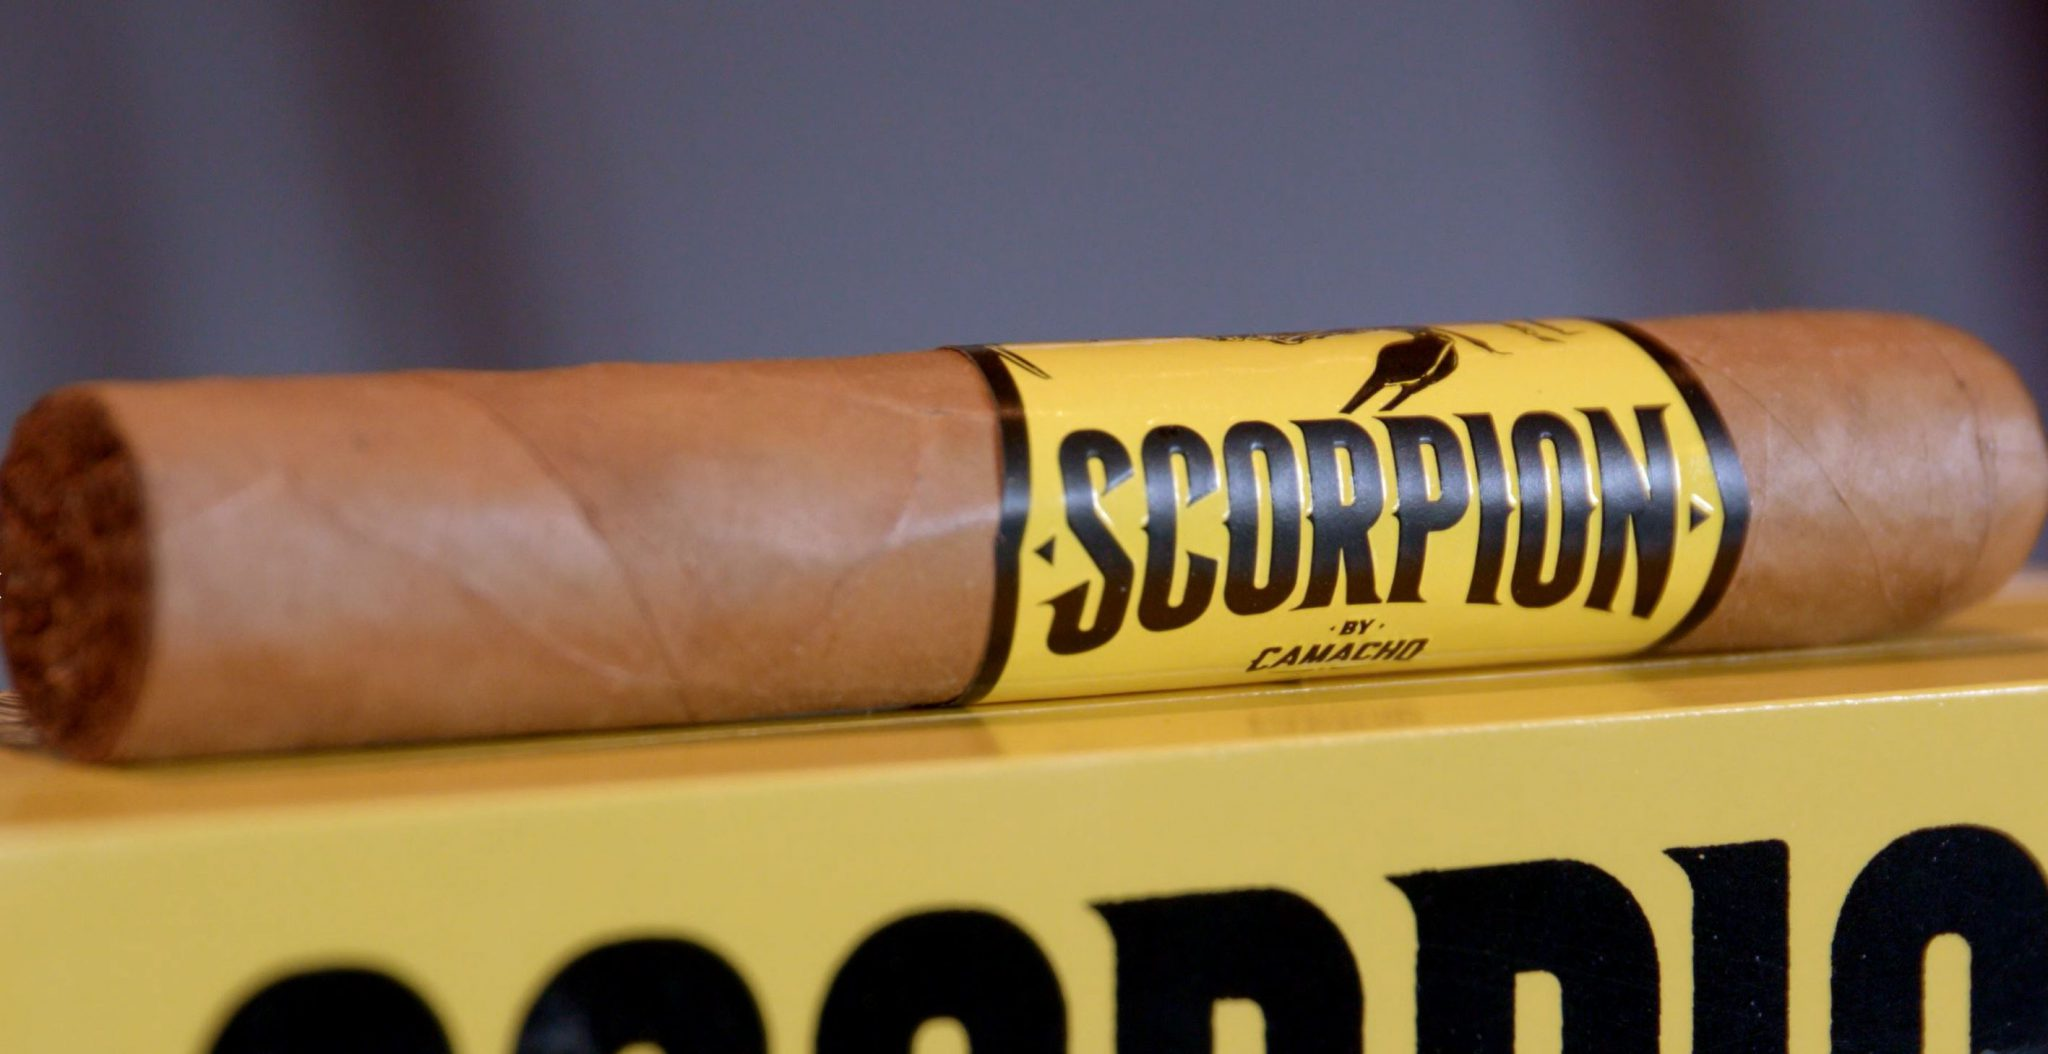 camacho scorpion connecticut cigar review video box and single cigar